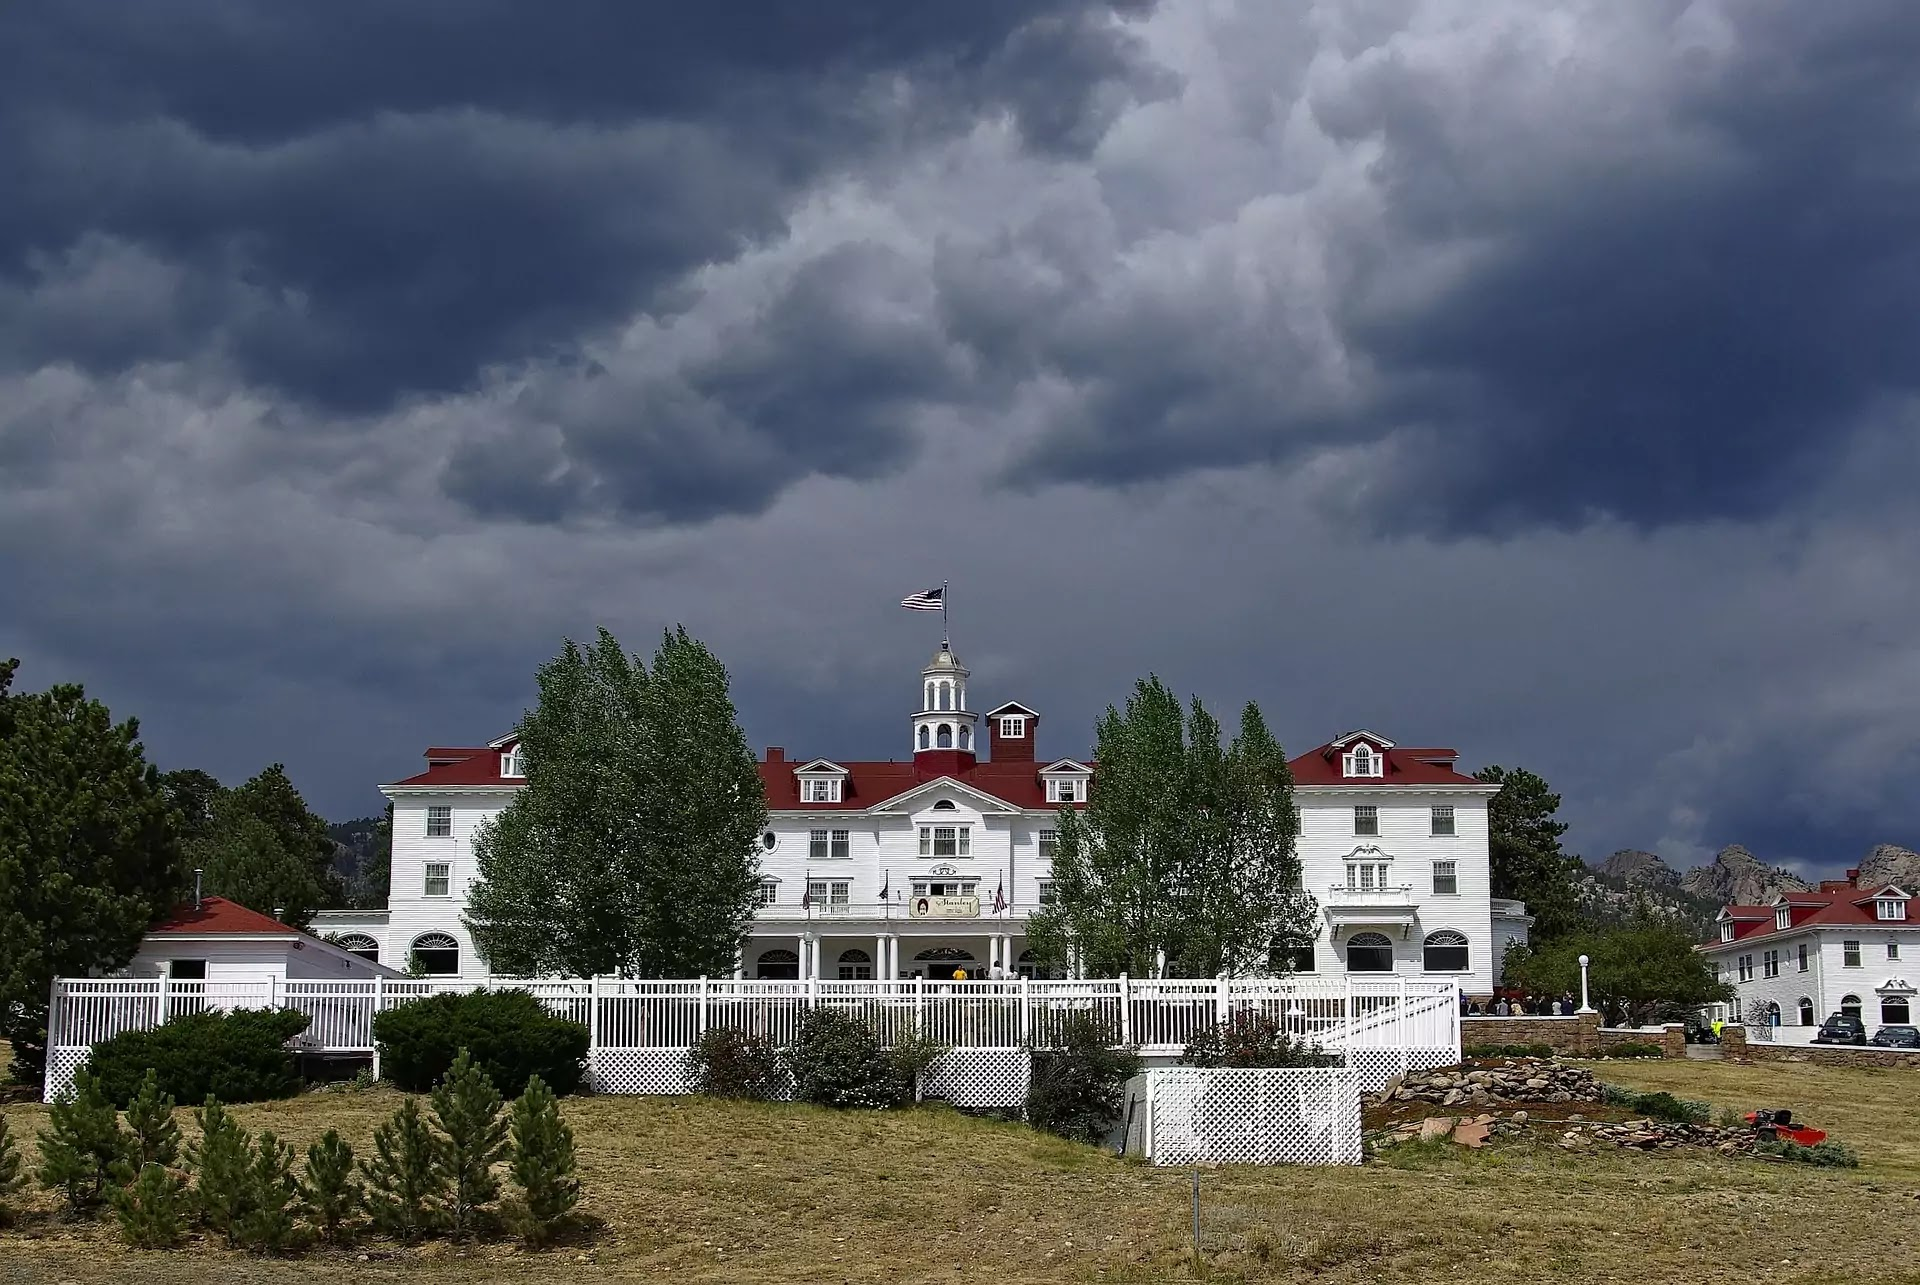 The Huanted Stanley Hotel, Colorado